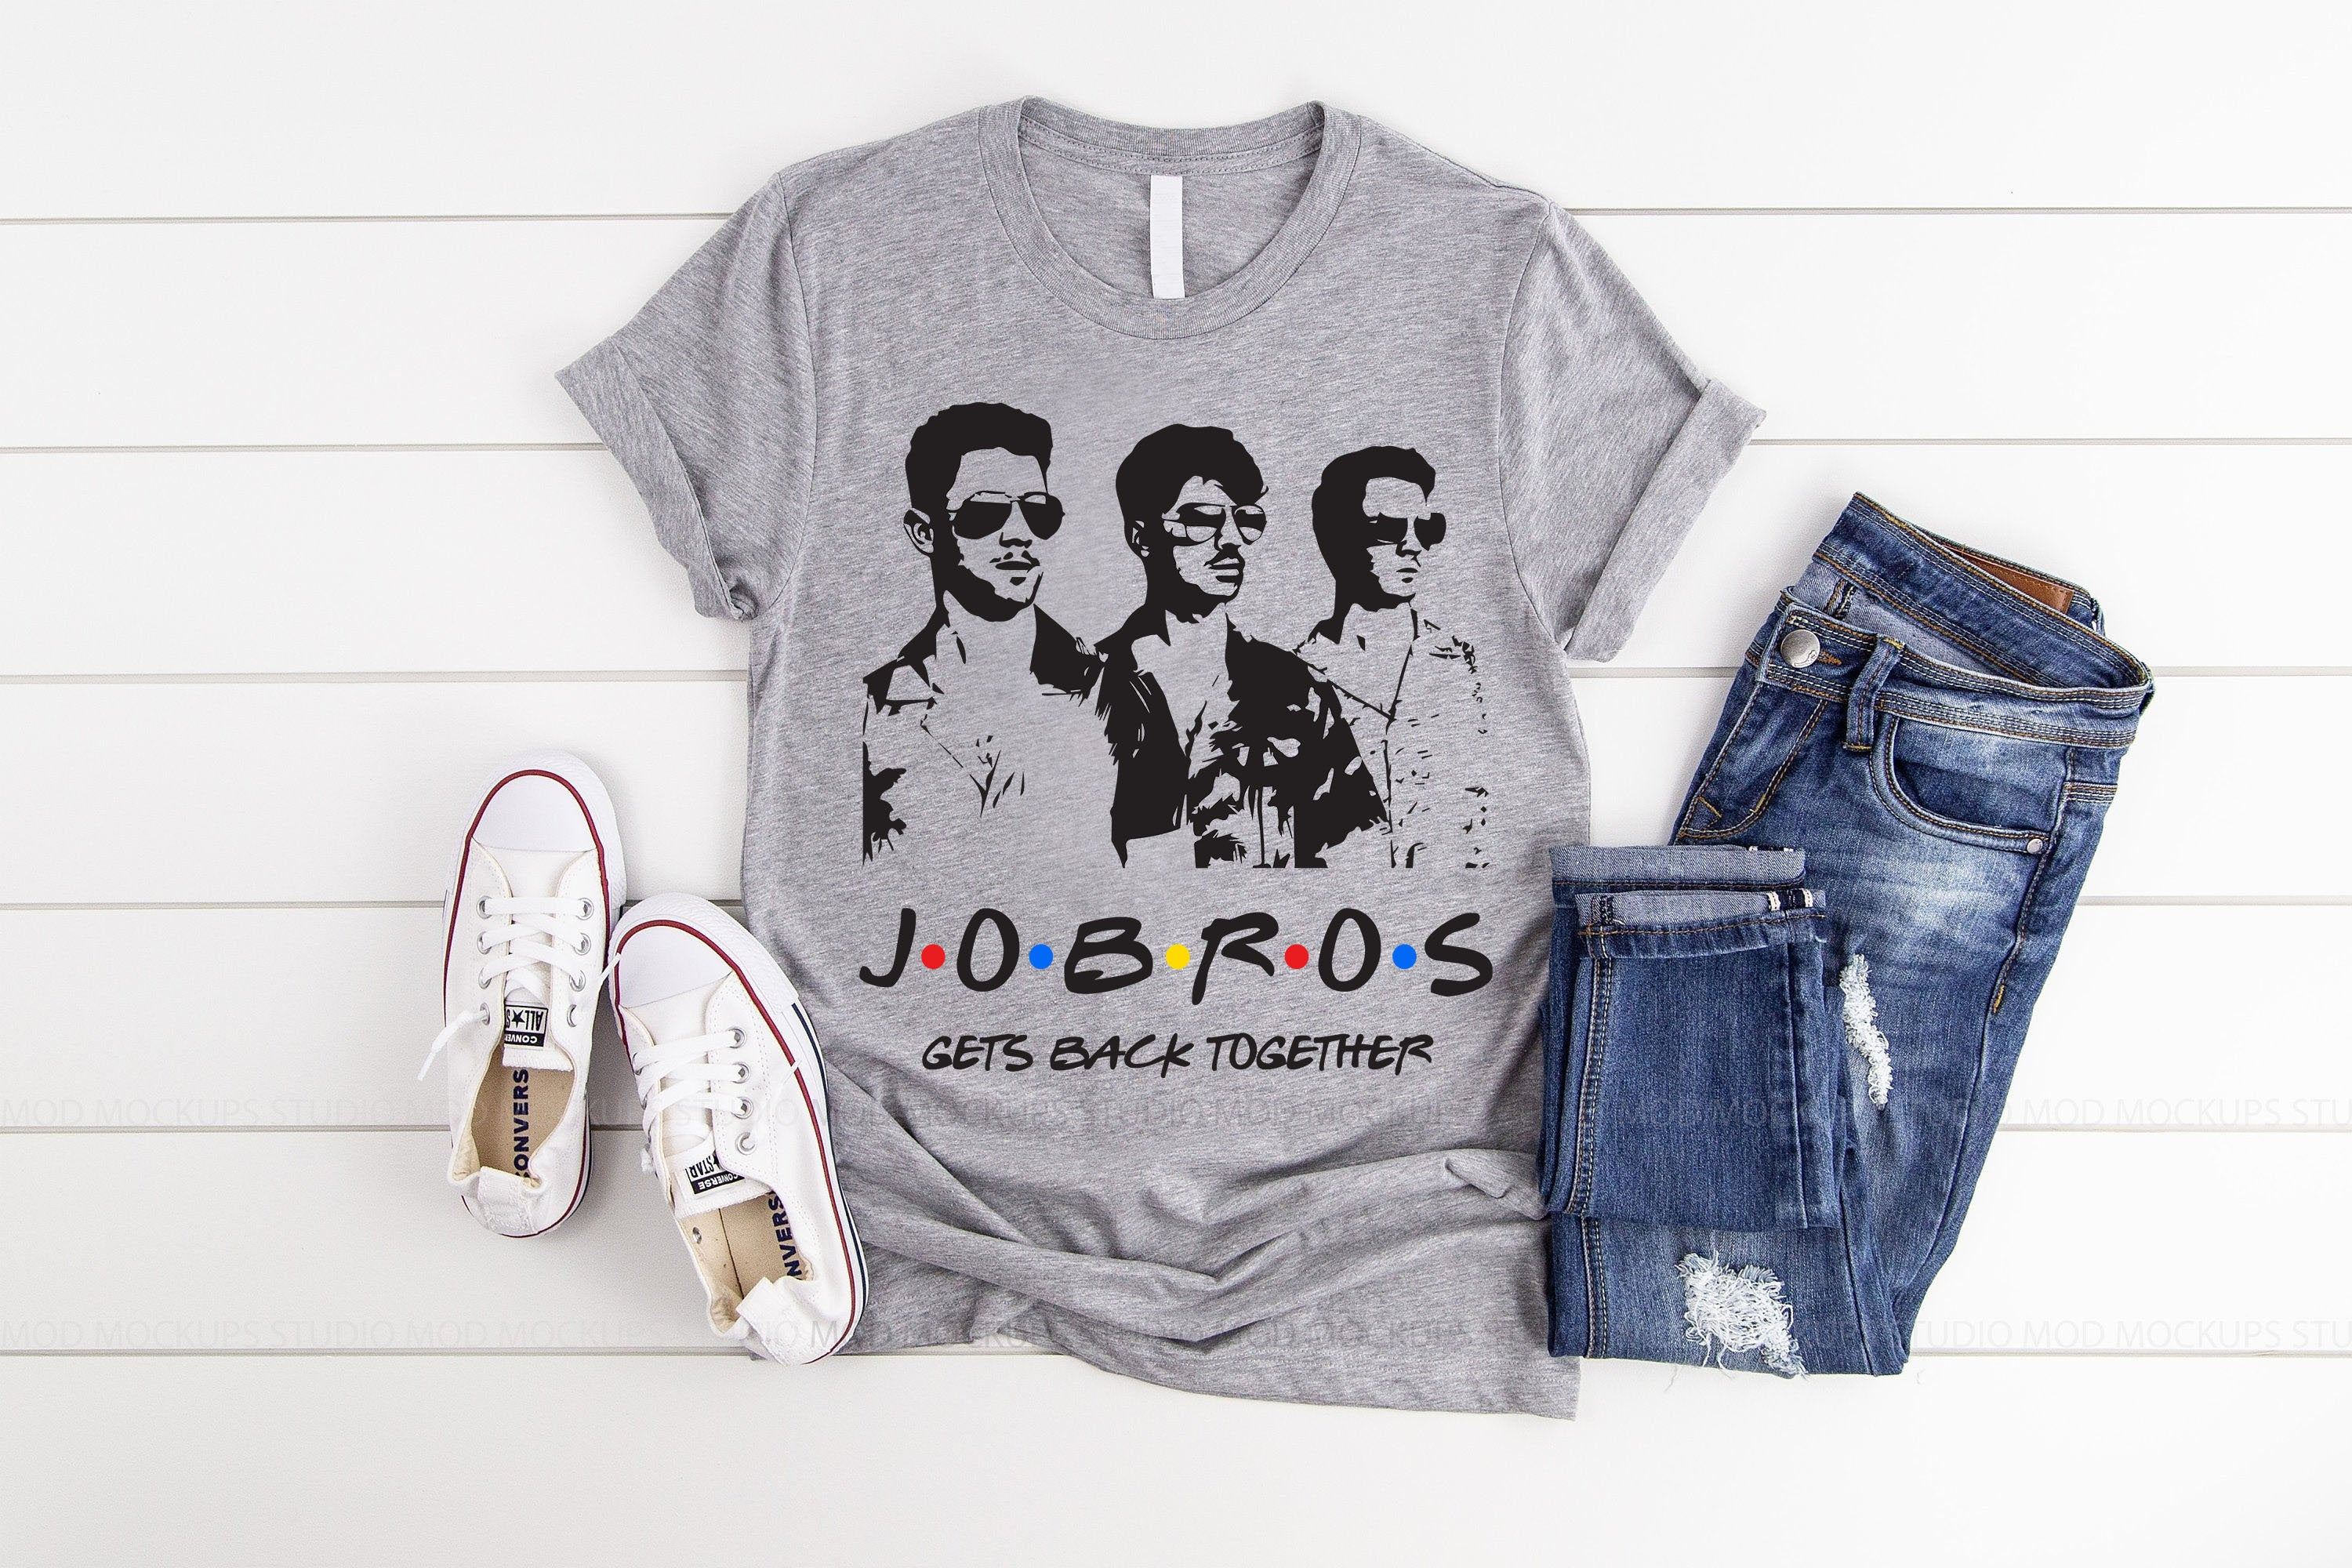 Jonas Gets Back Together Jobros Men T-Shirt